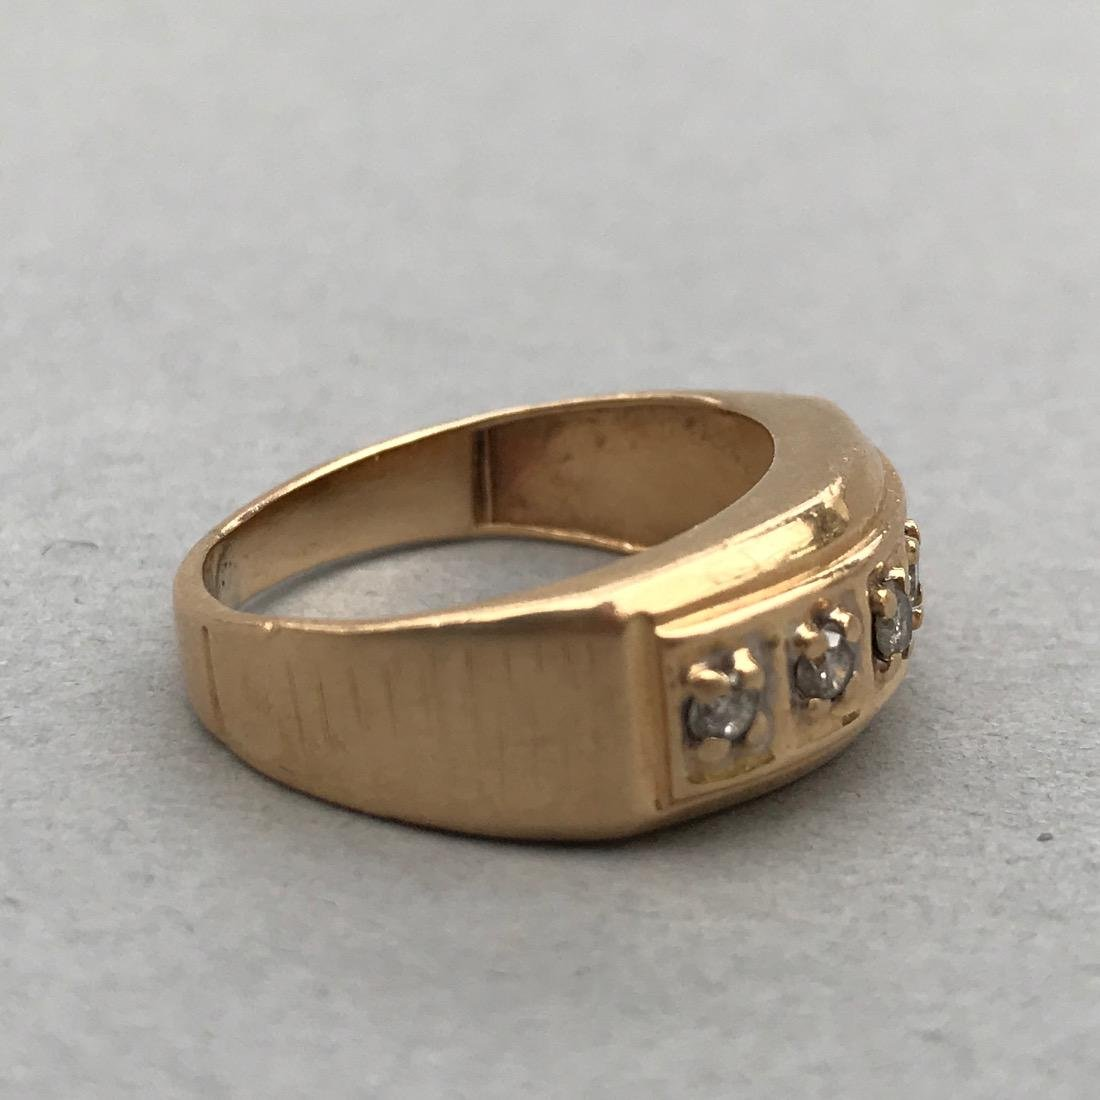 14K Gold Ring with 5 Diamonds - 3